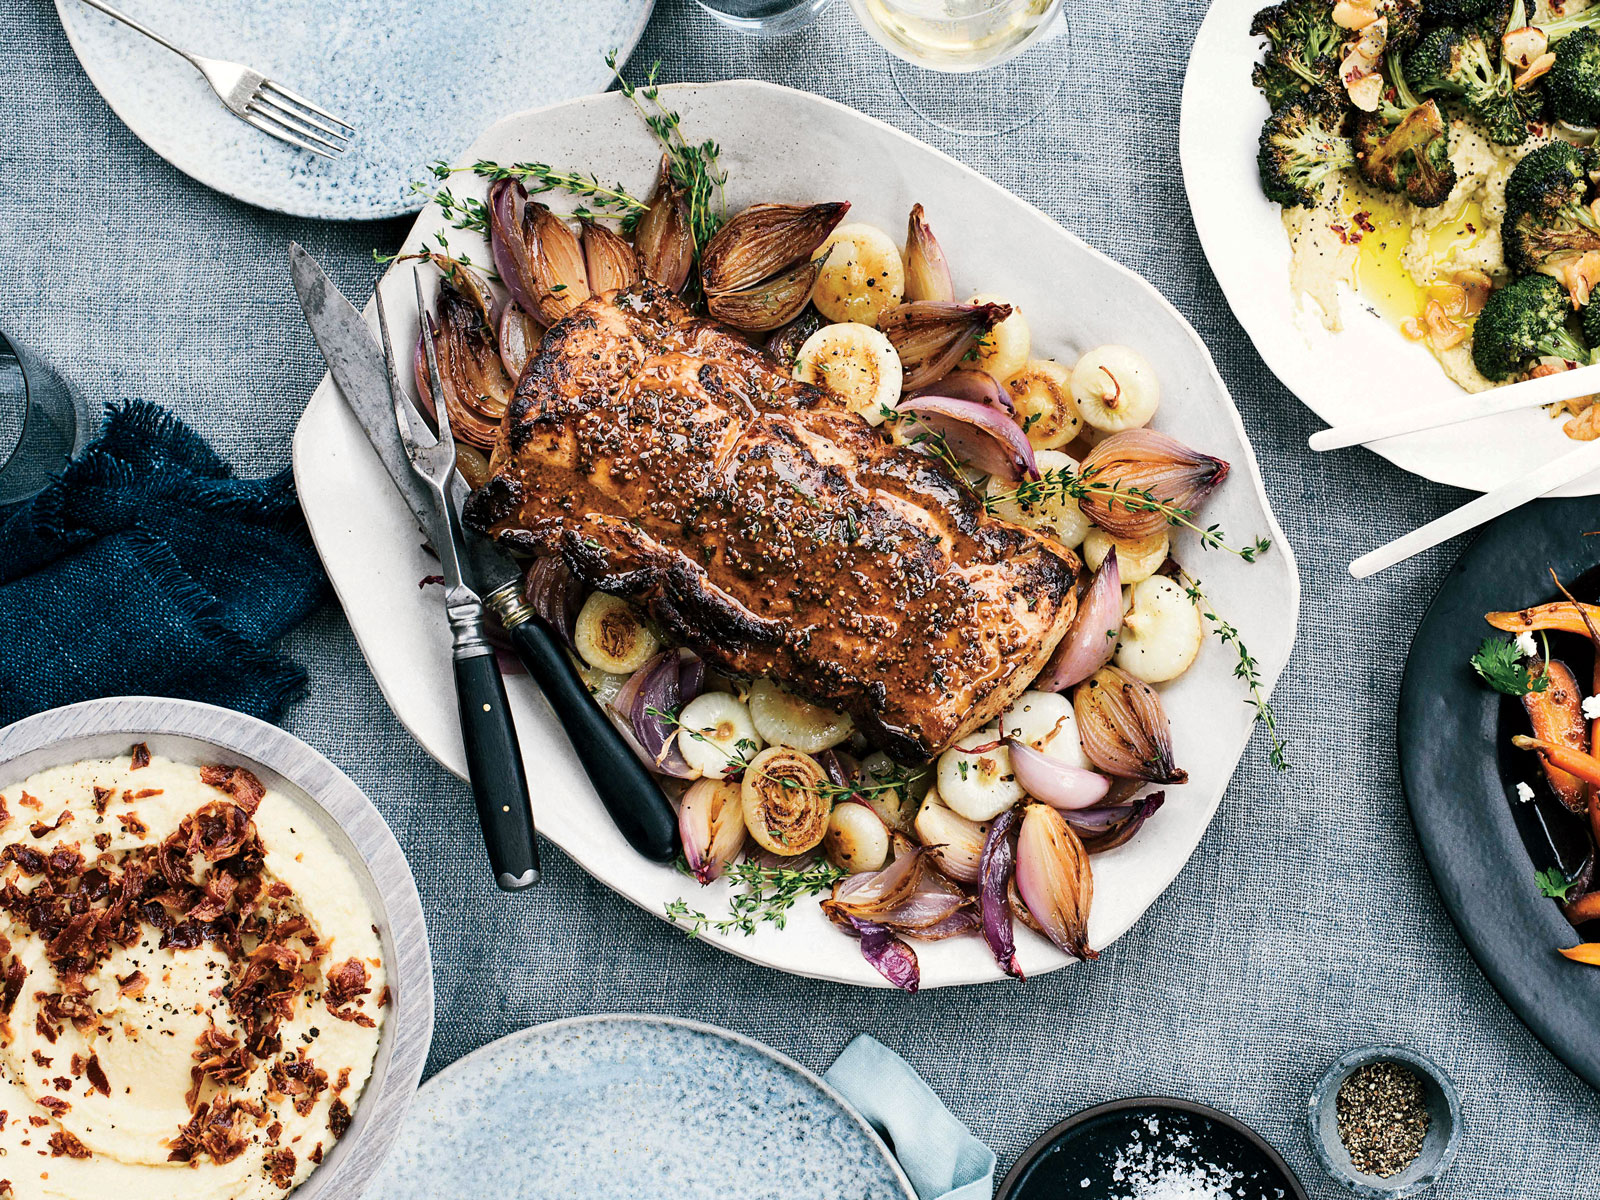 Pork Loin Roast with Caramelized Onions and White Wine-Dijon Sauce